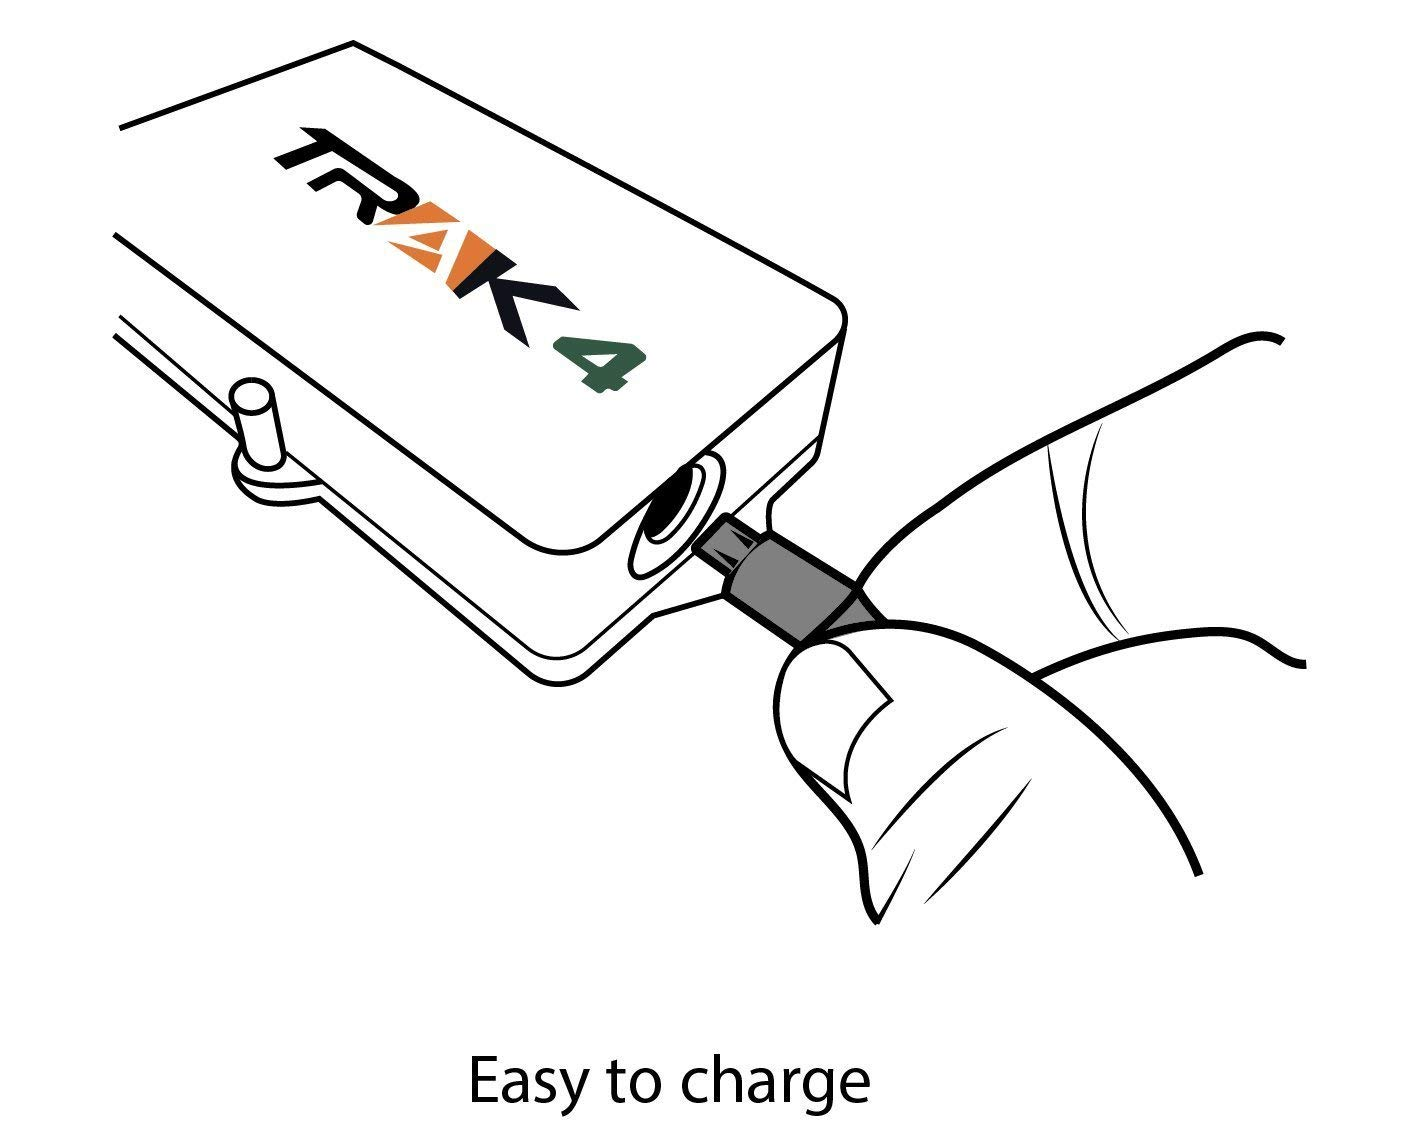 Trak 4 New Mobile GPS Tracker for Tracking Vehicles, Assets and People